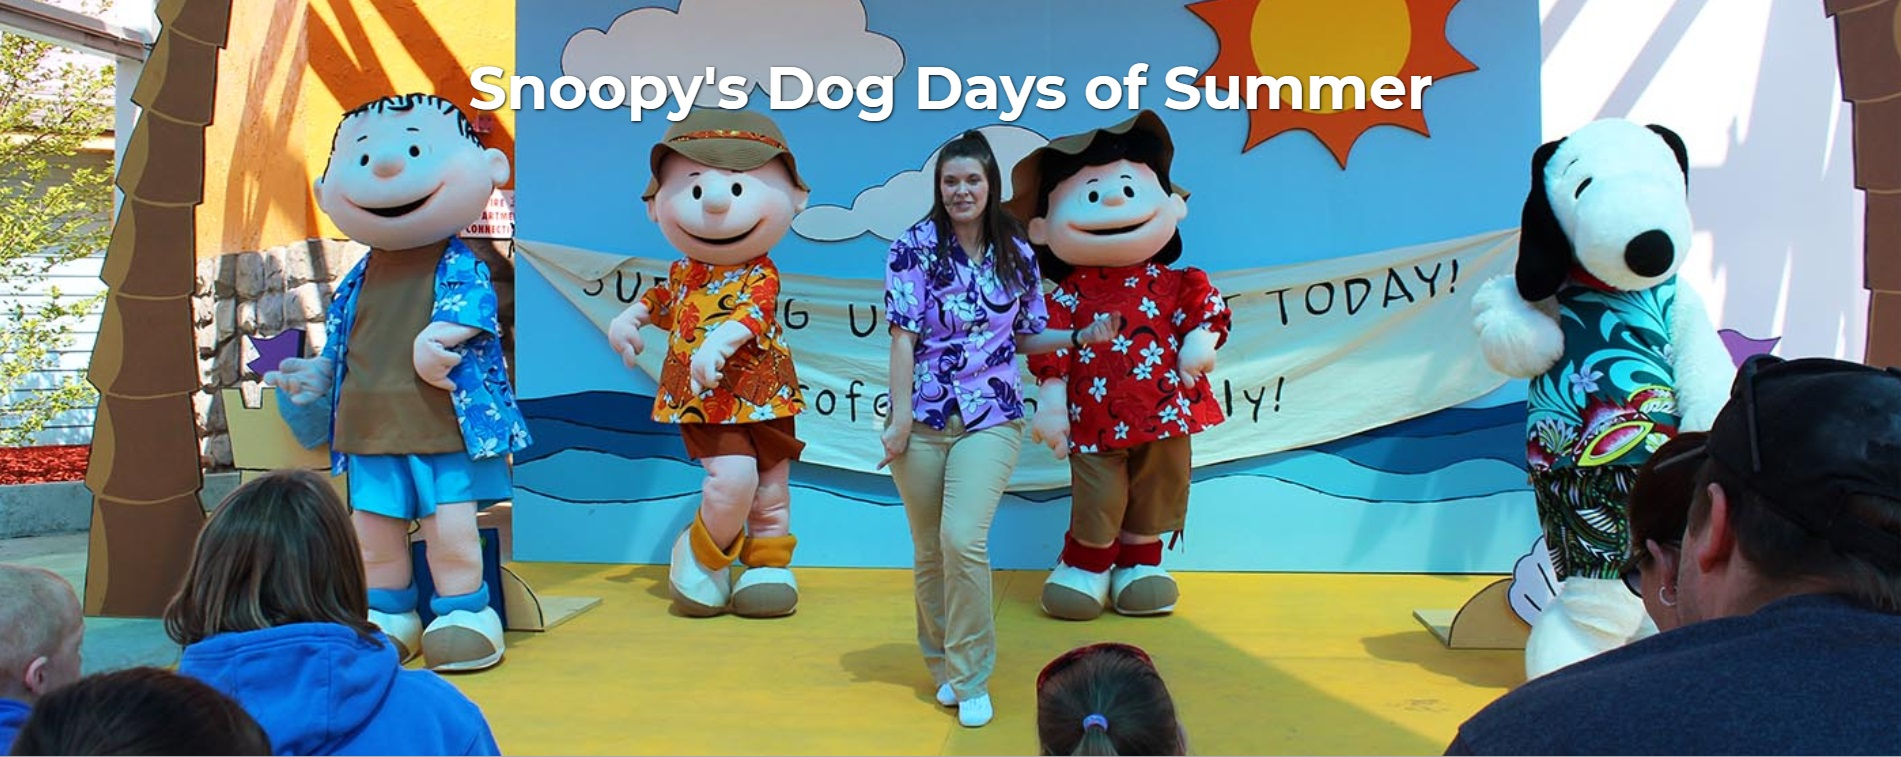 Snoopy's Dog Days of Summer